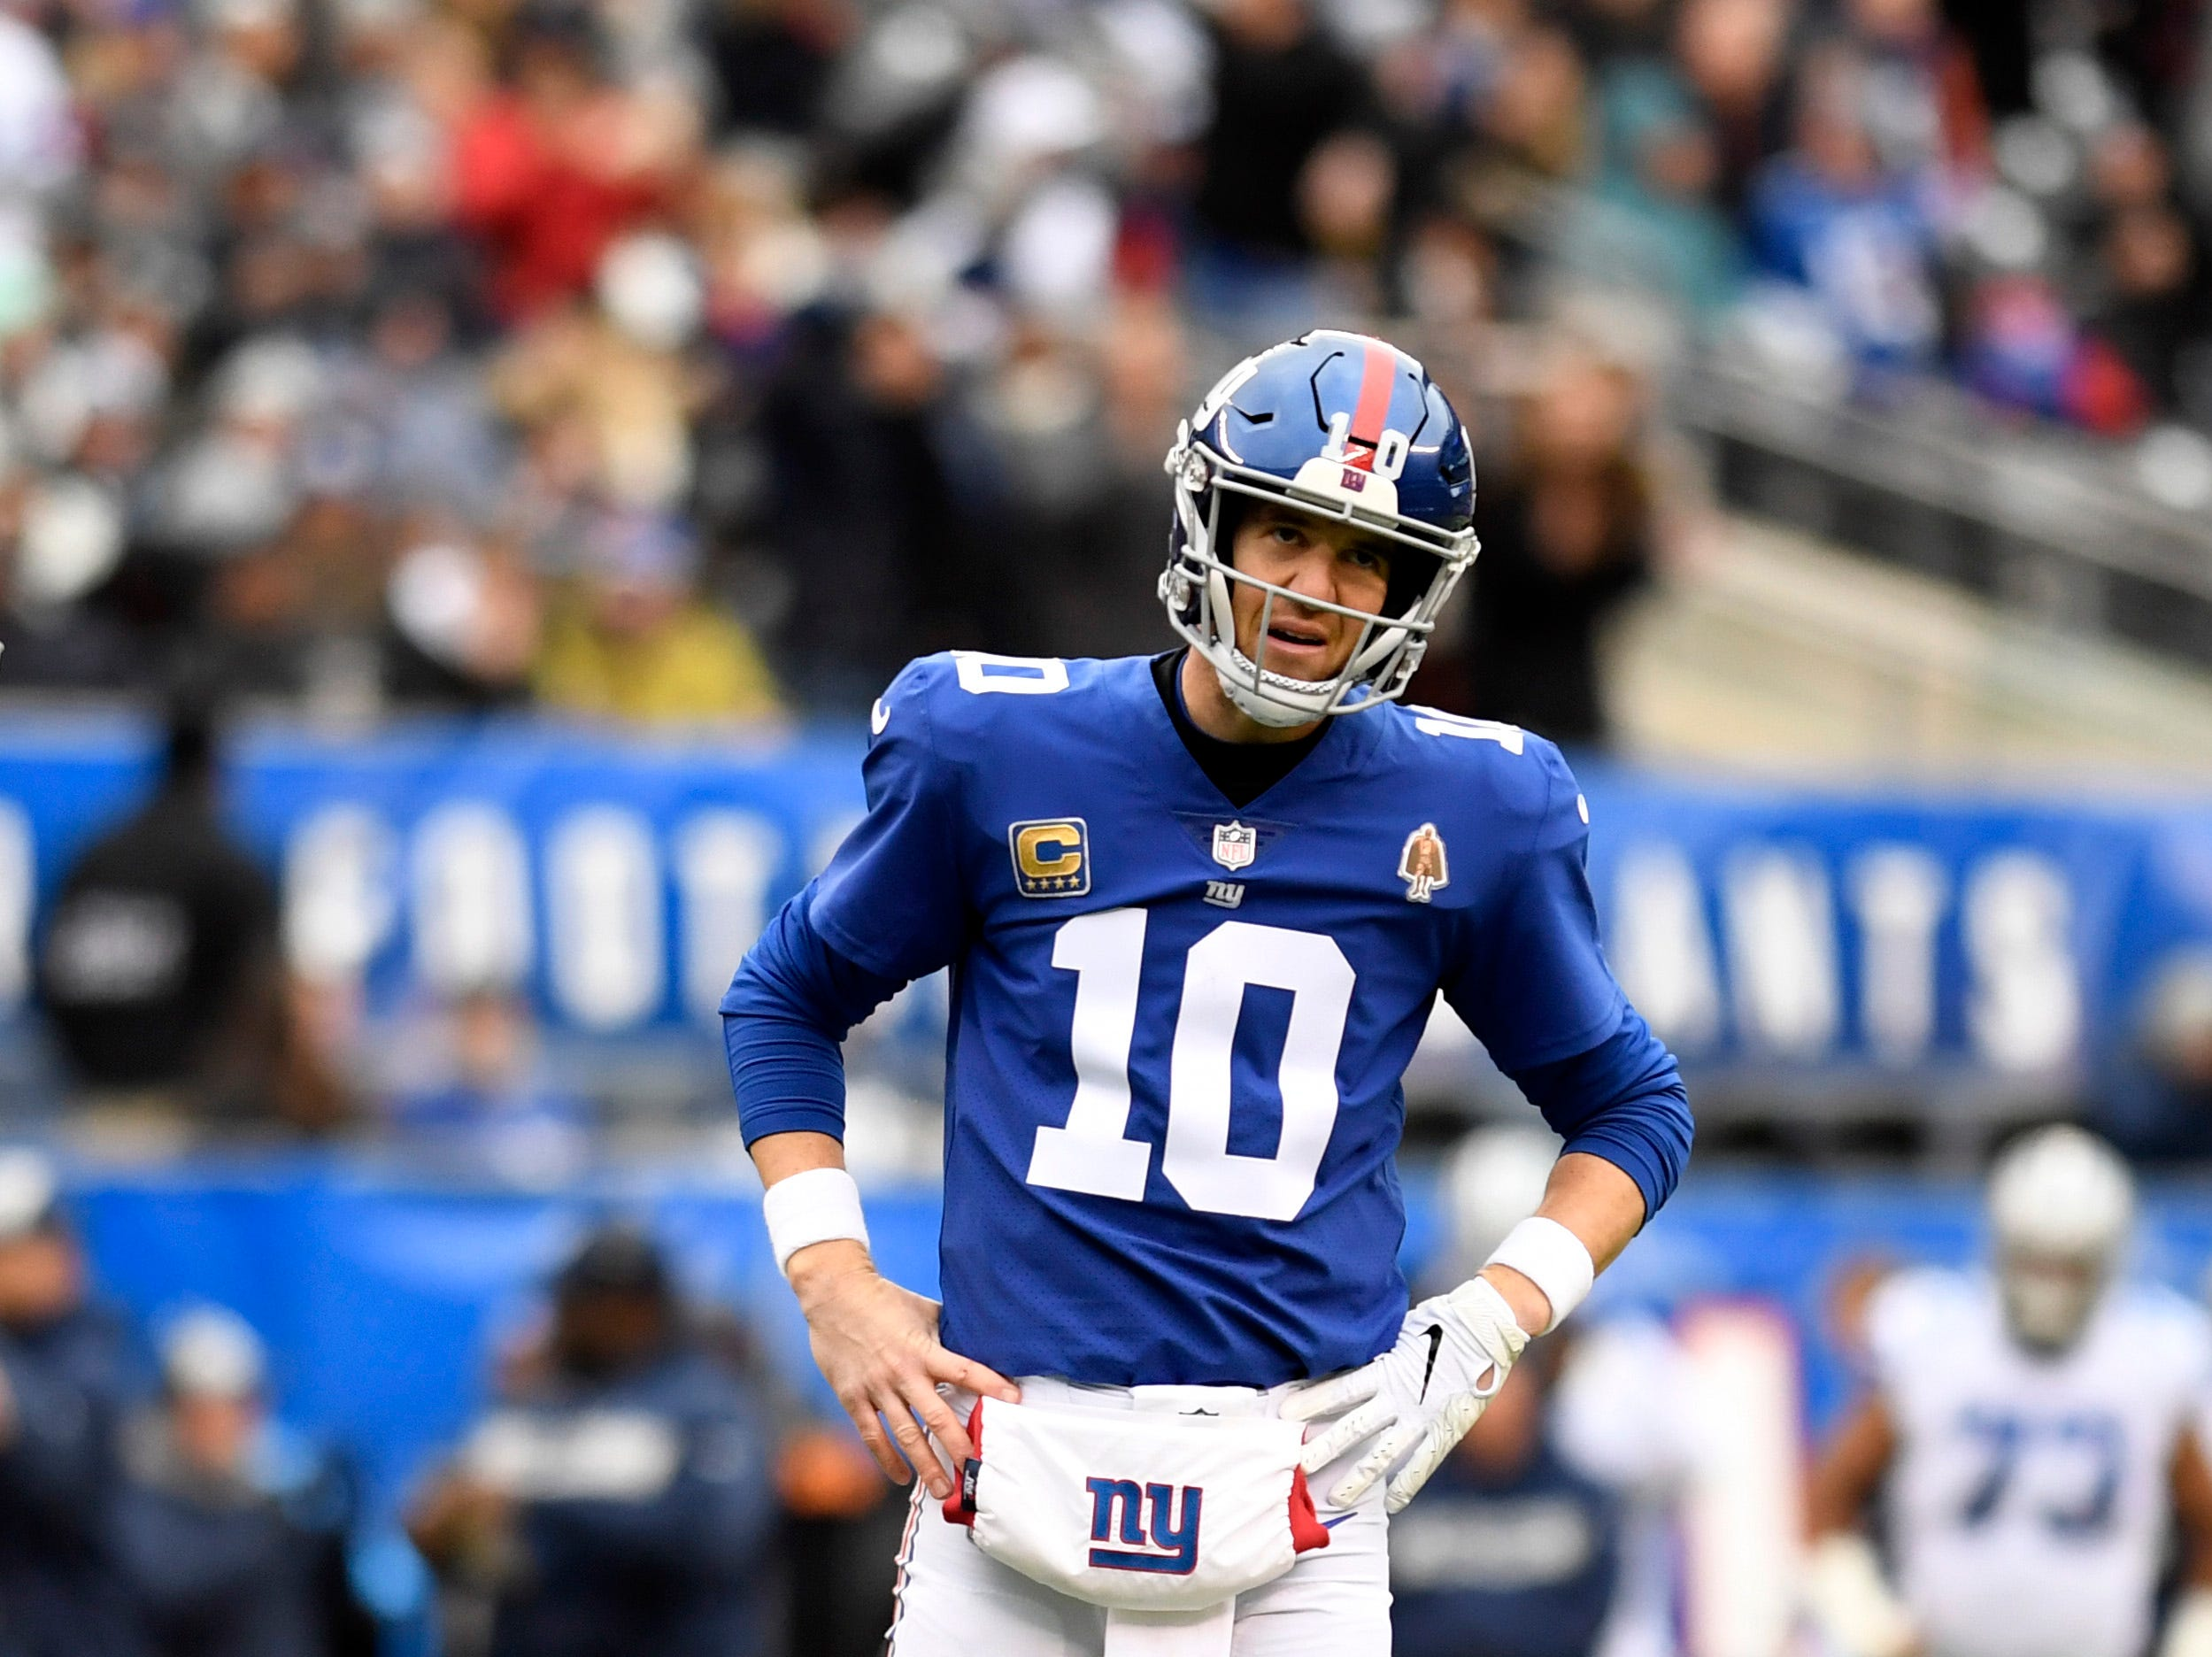 New York Giants quarterback Eli Manning (10) reacts after throwing an interception in the endzone in the first drive of the game. The New York Giants face the Dallas Cowboys in the last regular season game on Sunday, Dec. 30, 2018, in East Rutherford.